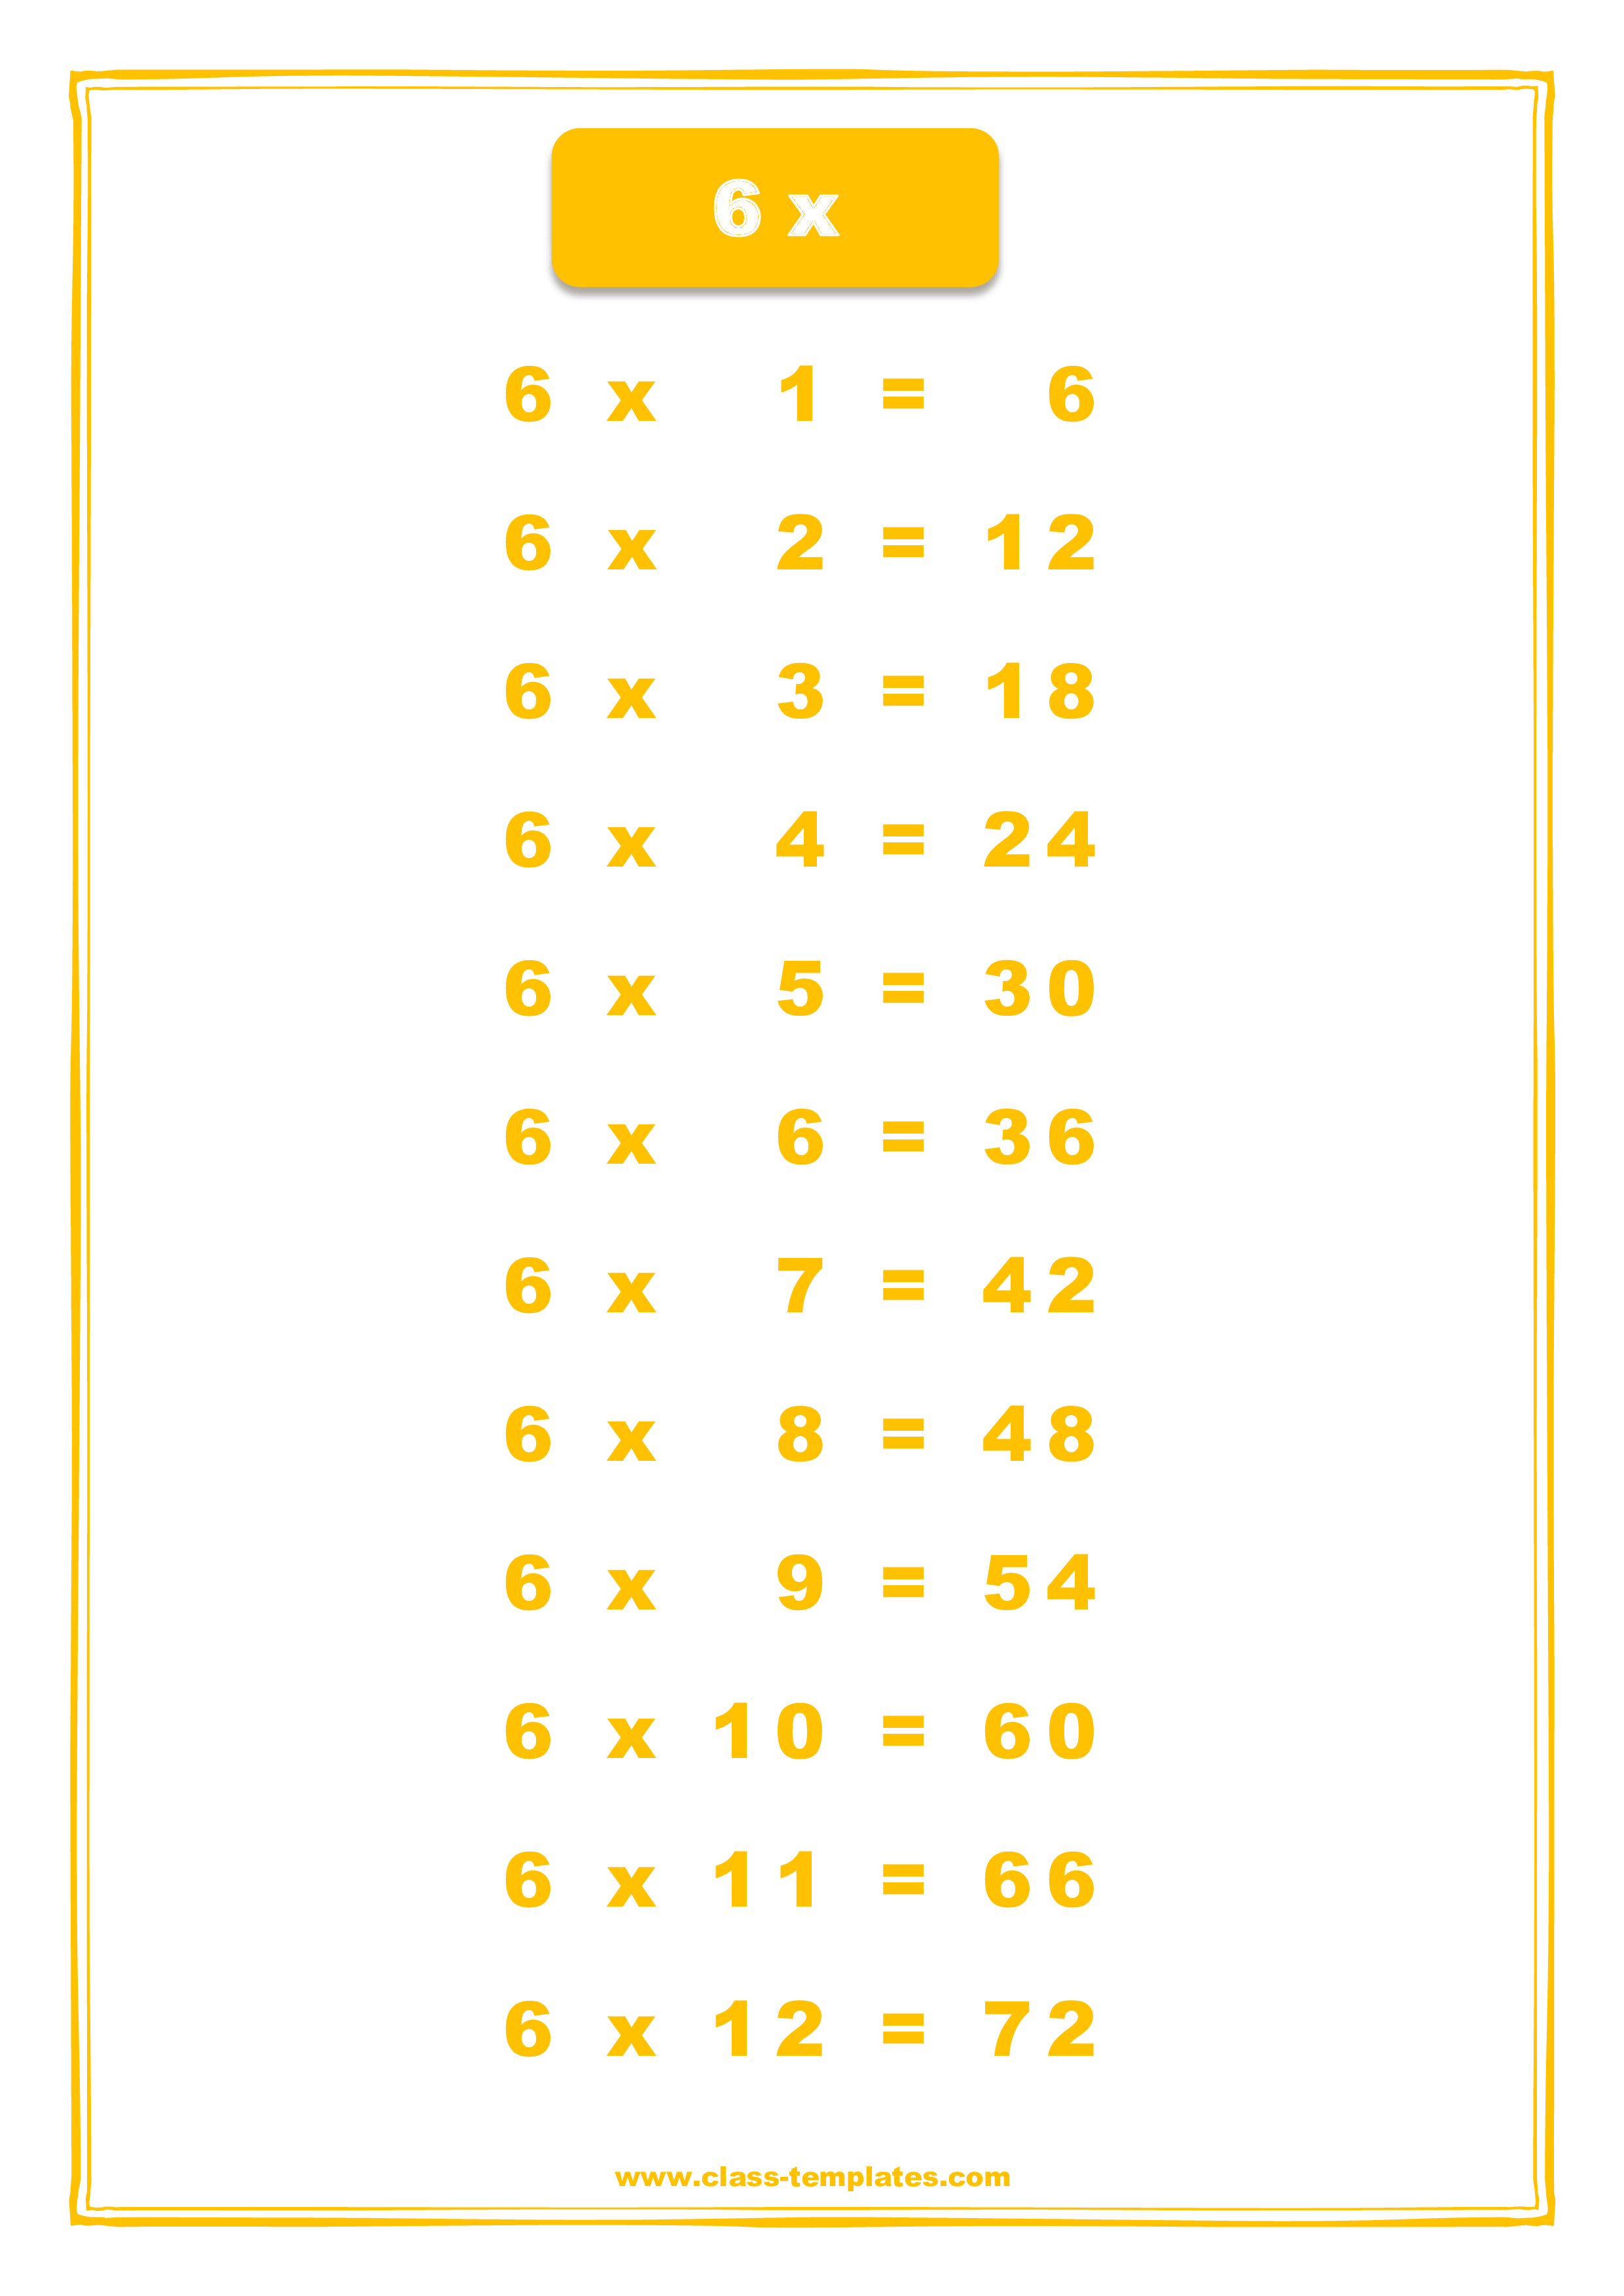 X6 Times Table Chart